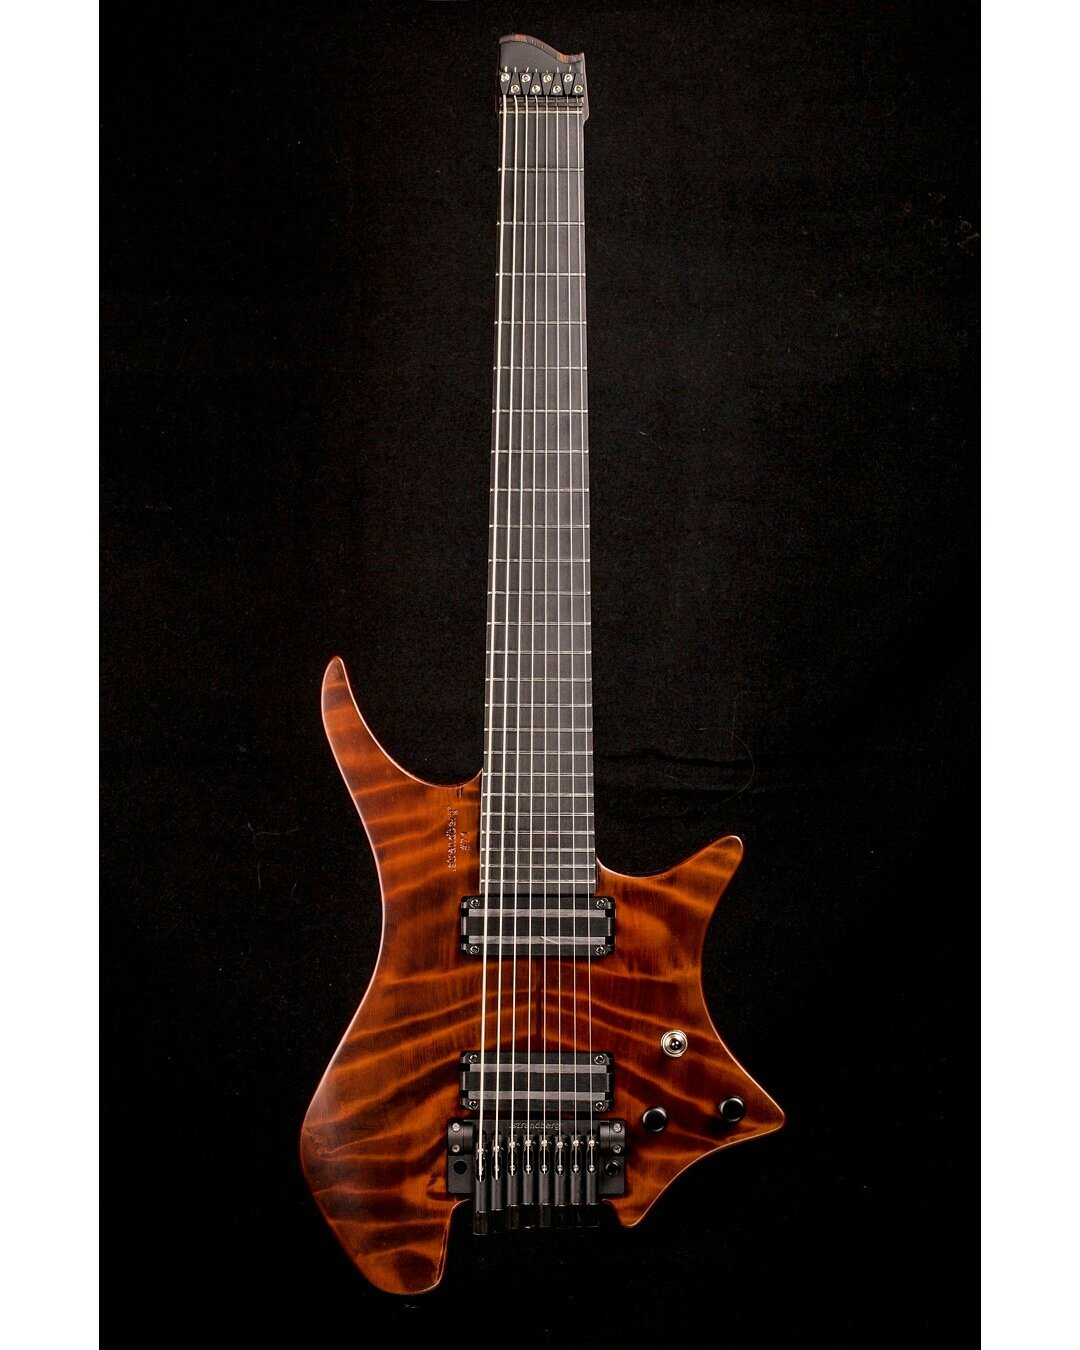 Strandberg Guitars On Twitter The Front Of Strandbergguit 71 This Is Musicman Silhouette Special Way You Have To Think Belonging Simon Girard Beyondcreation1 Eightstring Madetomeasure Redwood